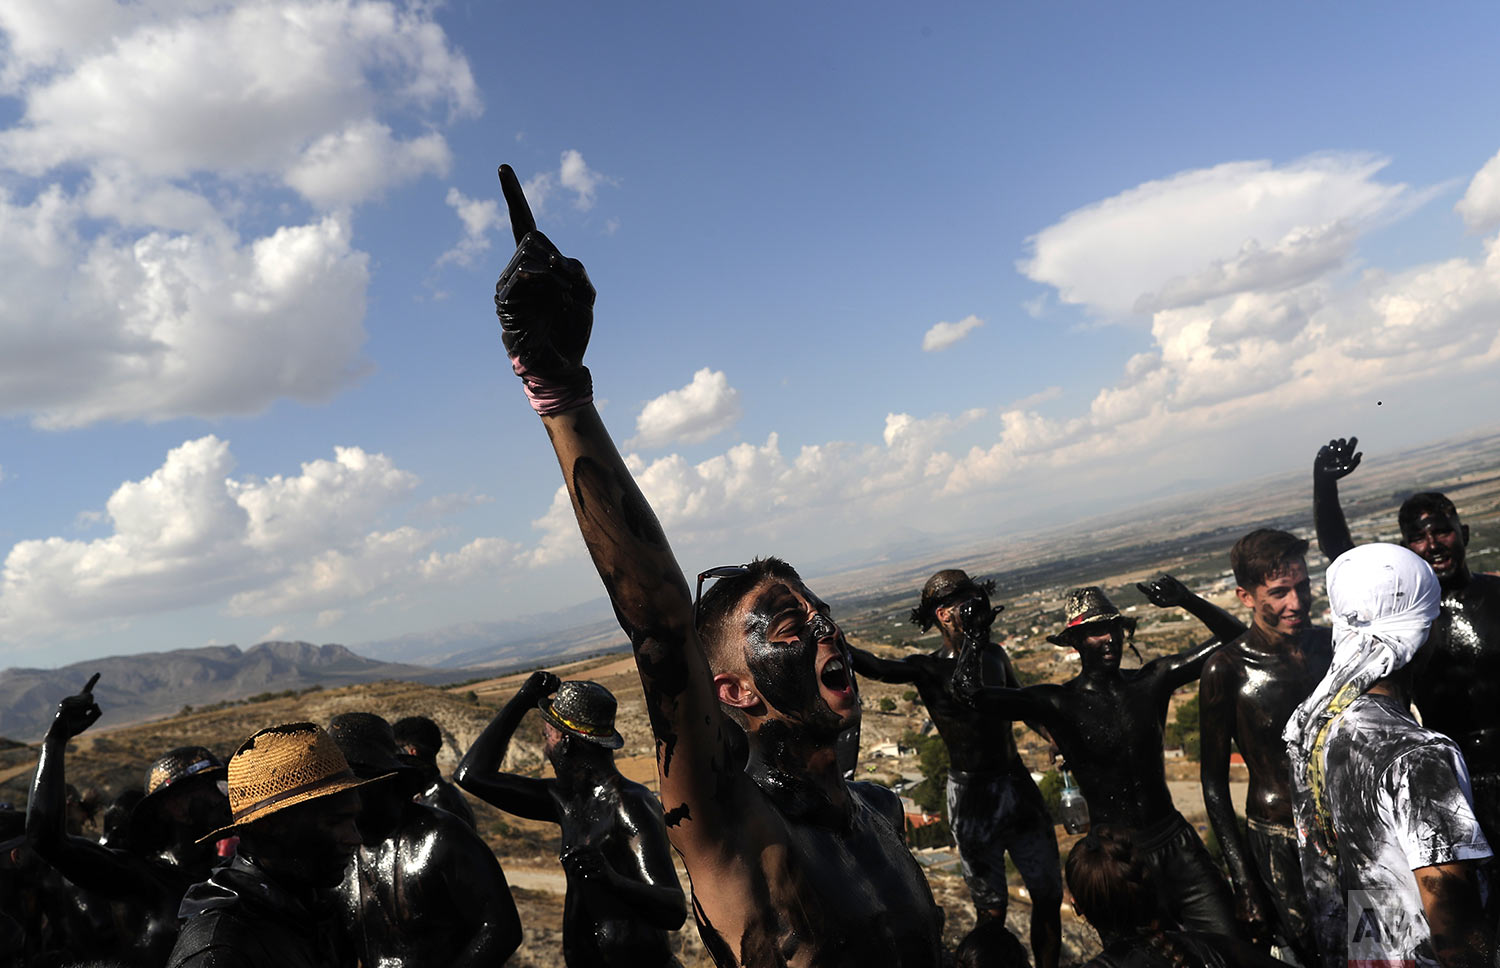 Bboys painted with black grease celebrate during the traditional festivities of the Cascamorras festival in Baza, Spain, Friday, Sept. 6, 2019. (AP Photo/Manu Fernandez)